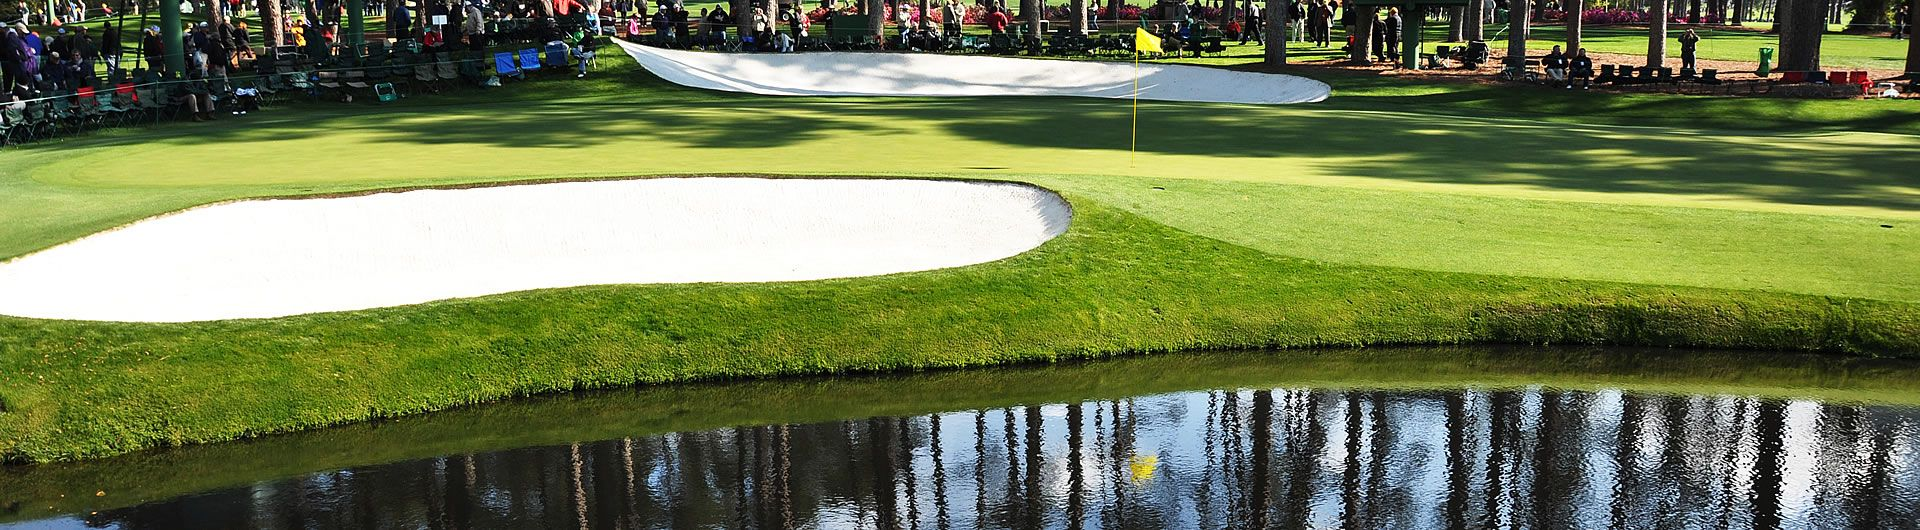 16th Green at the Masters